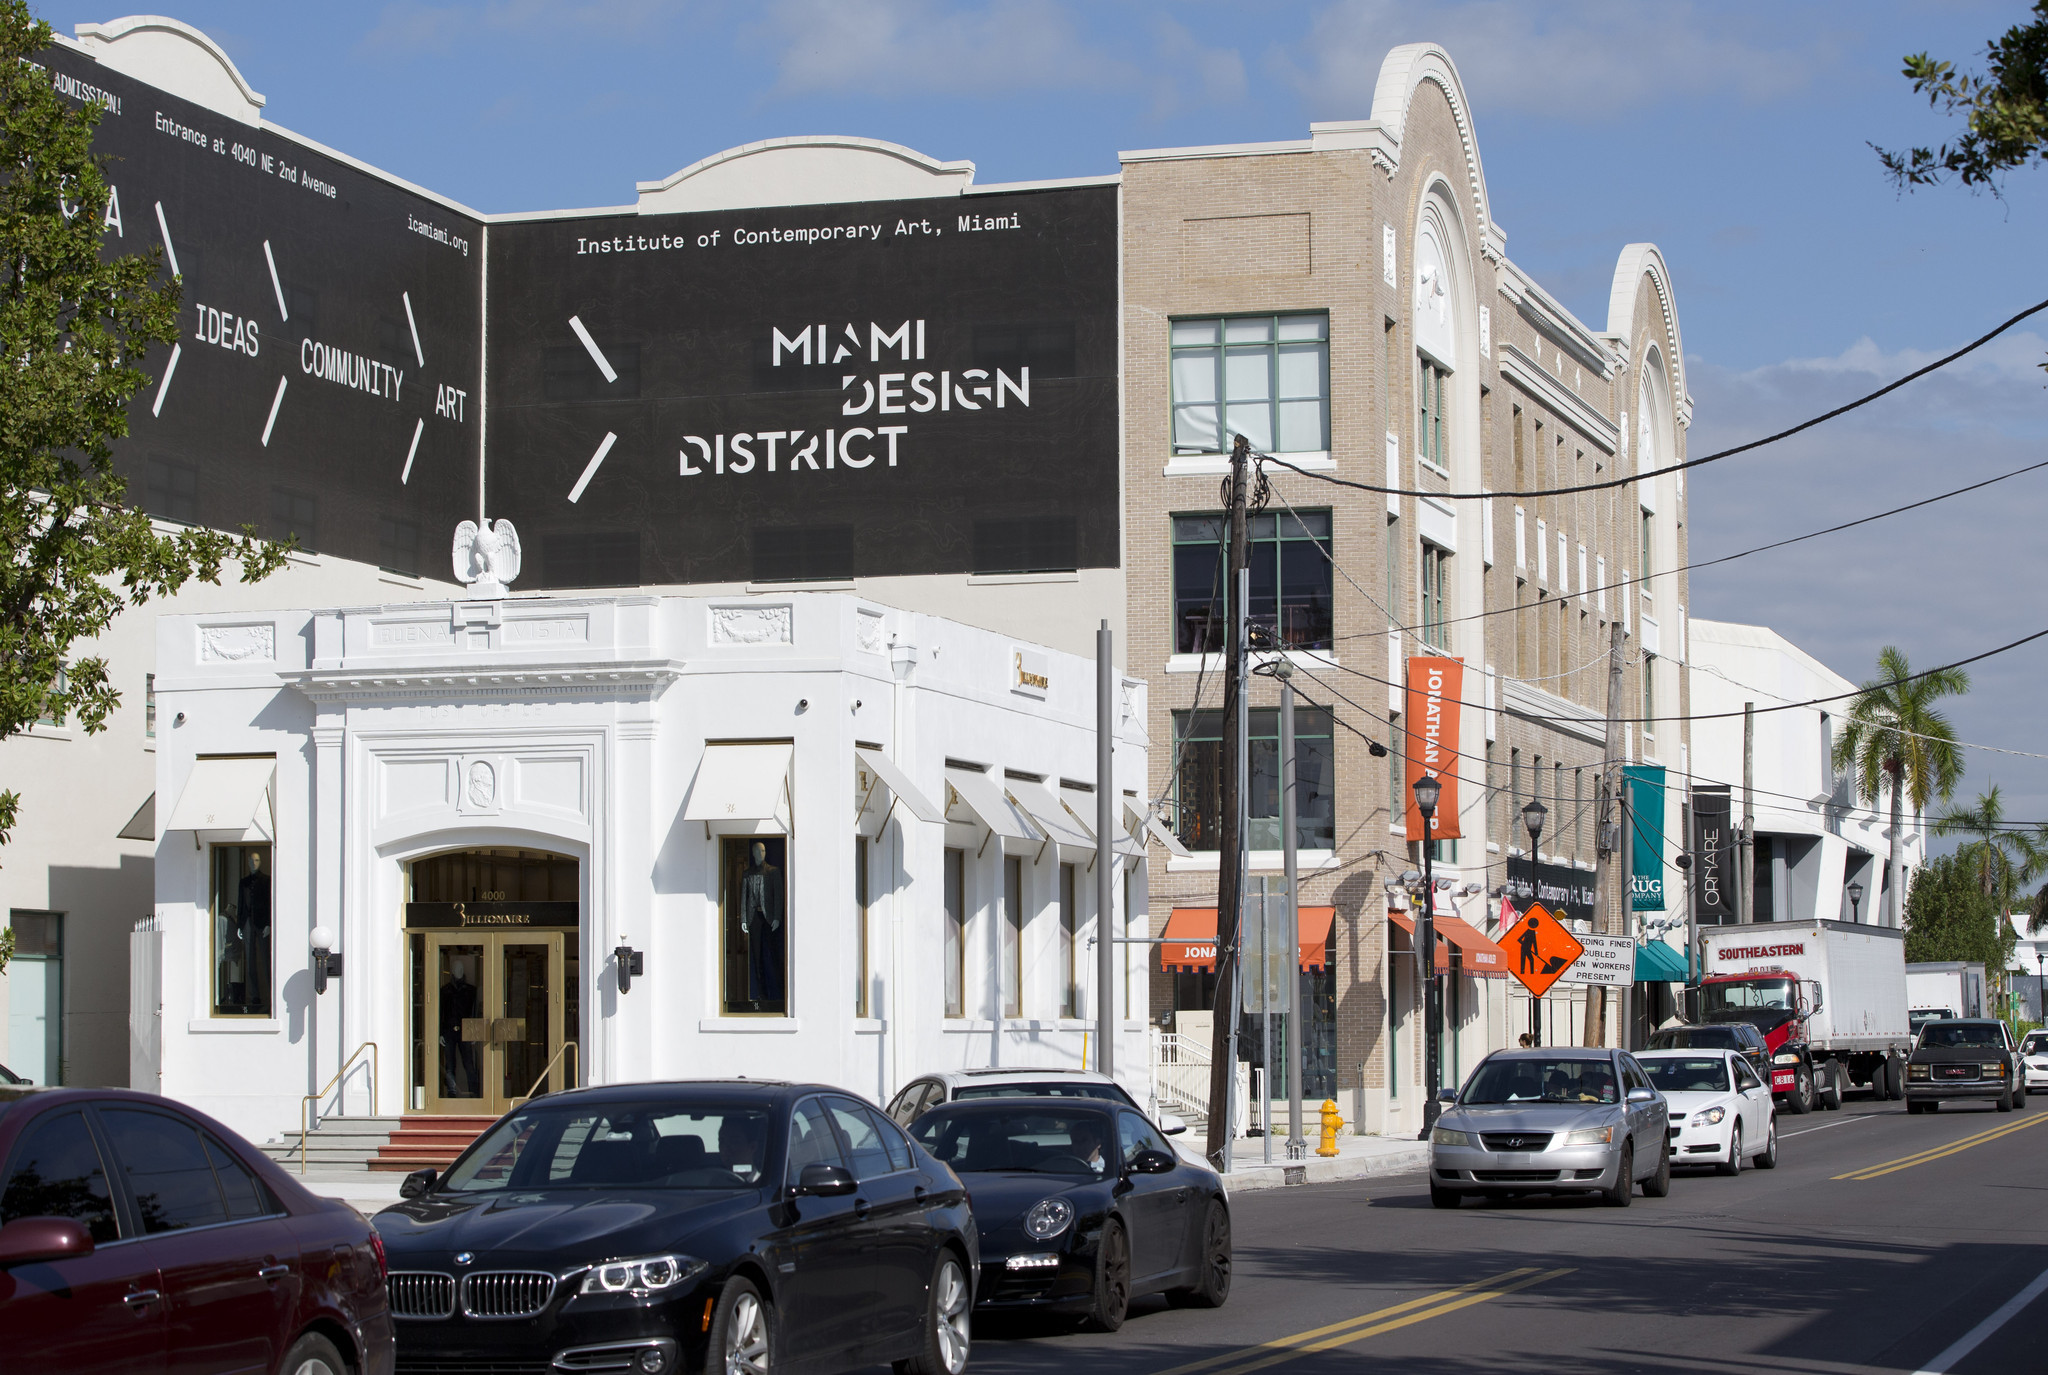 Report details new development in miami design district